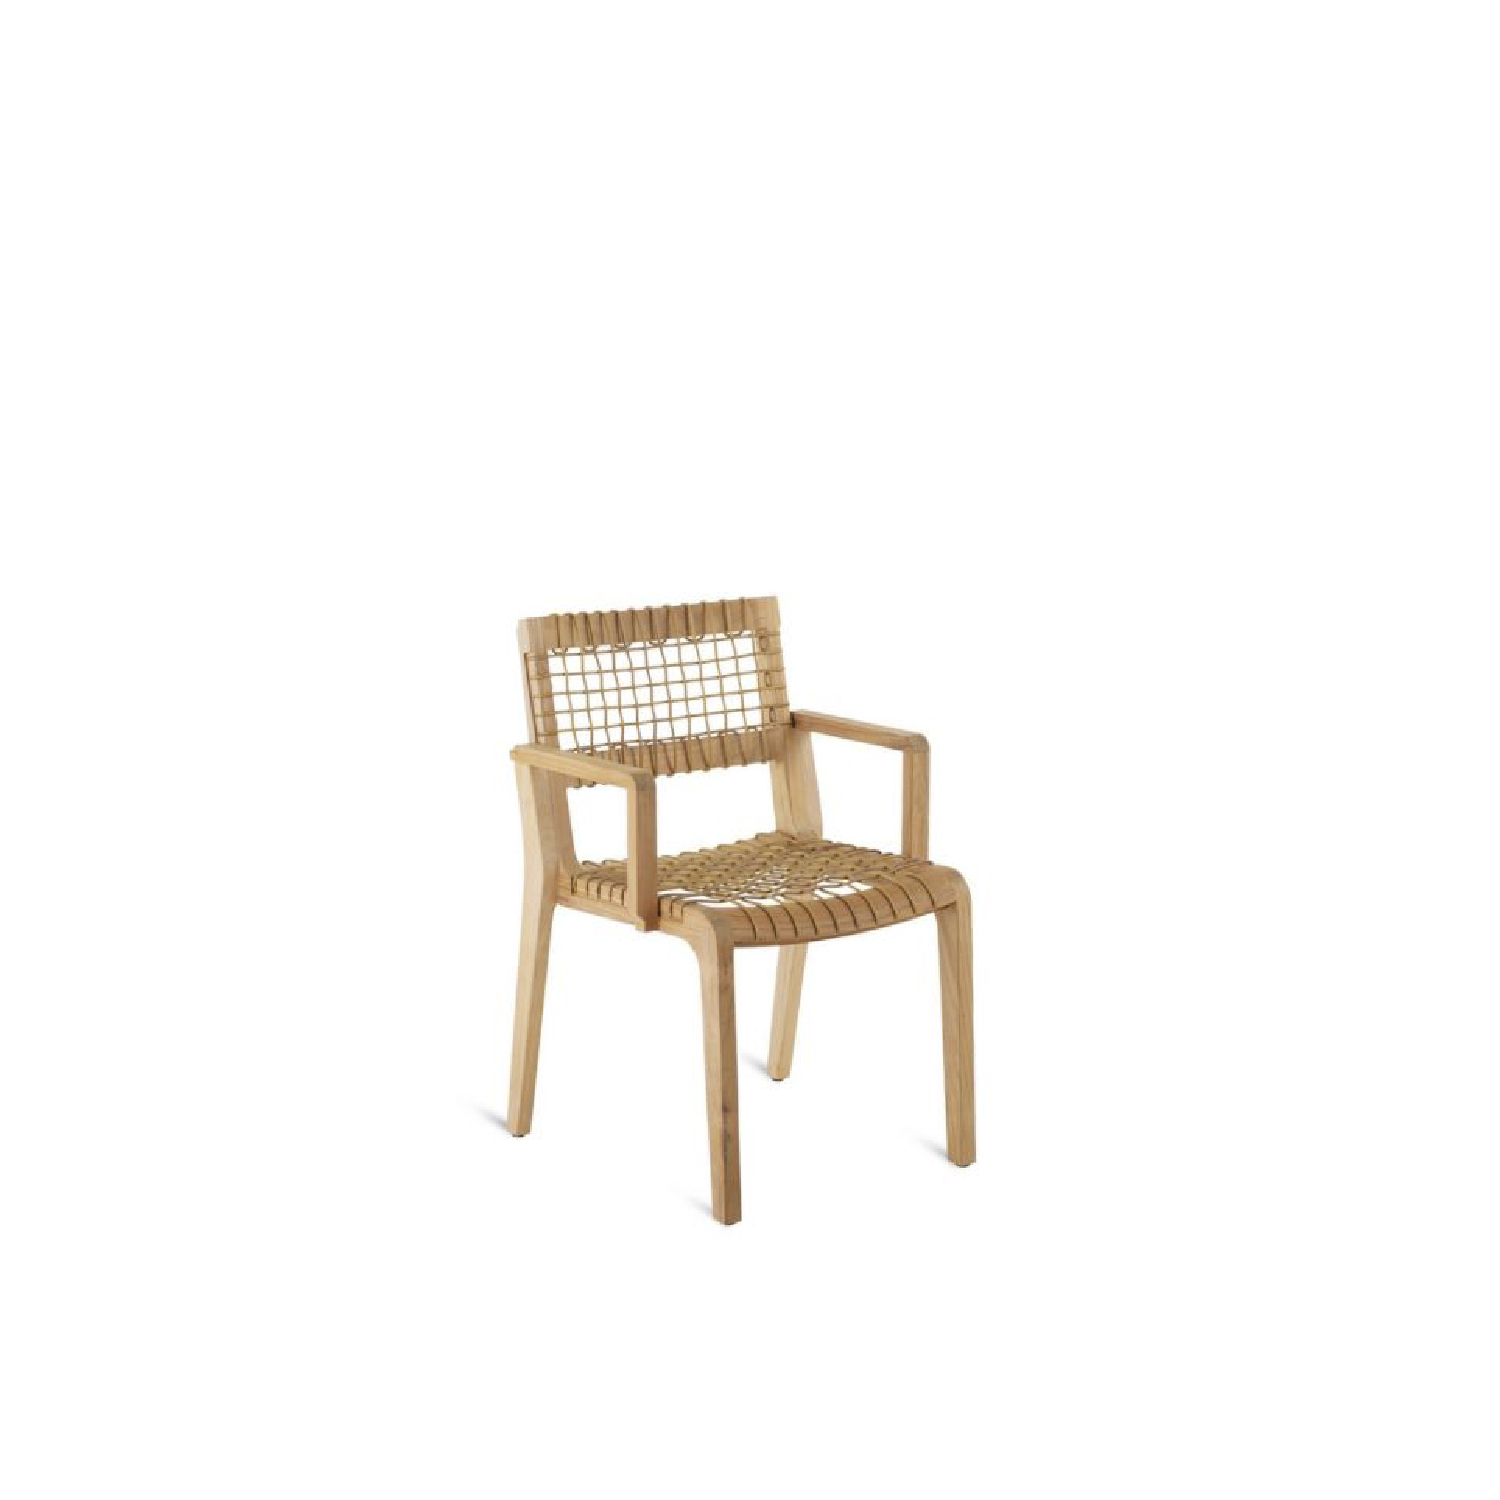 Synthesis Small Armchair - Synthesis small armchair in teak and WaProLace.   Structure: teak and Synthetic fibre WaProLace® wicker natural. Cushions: removable covers in 100% acrylic fabric, Diamante colour.  | Matter of Stuff